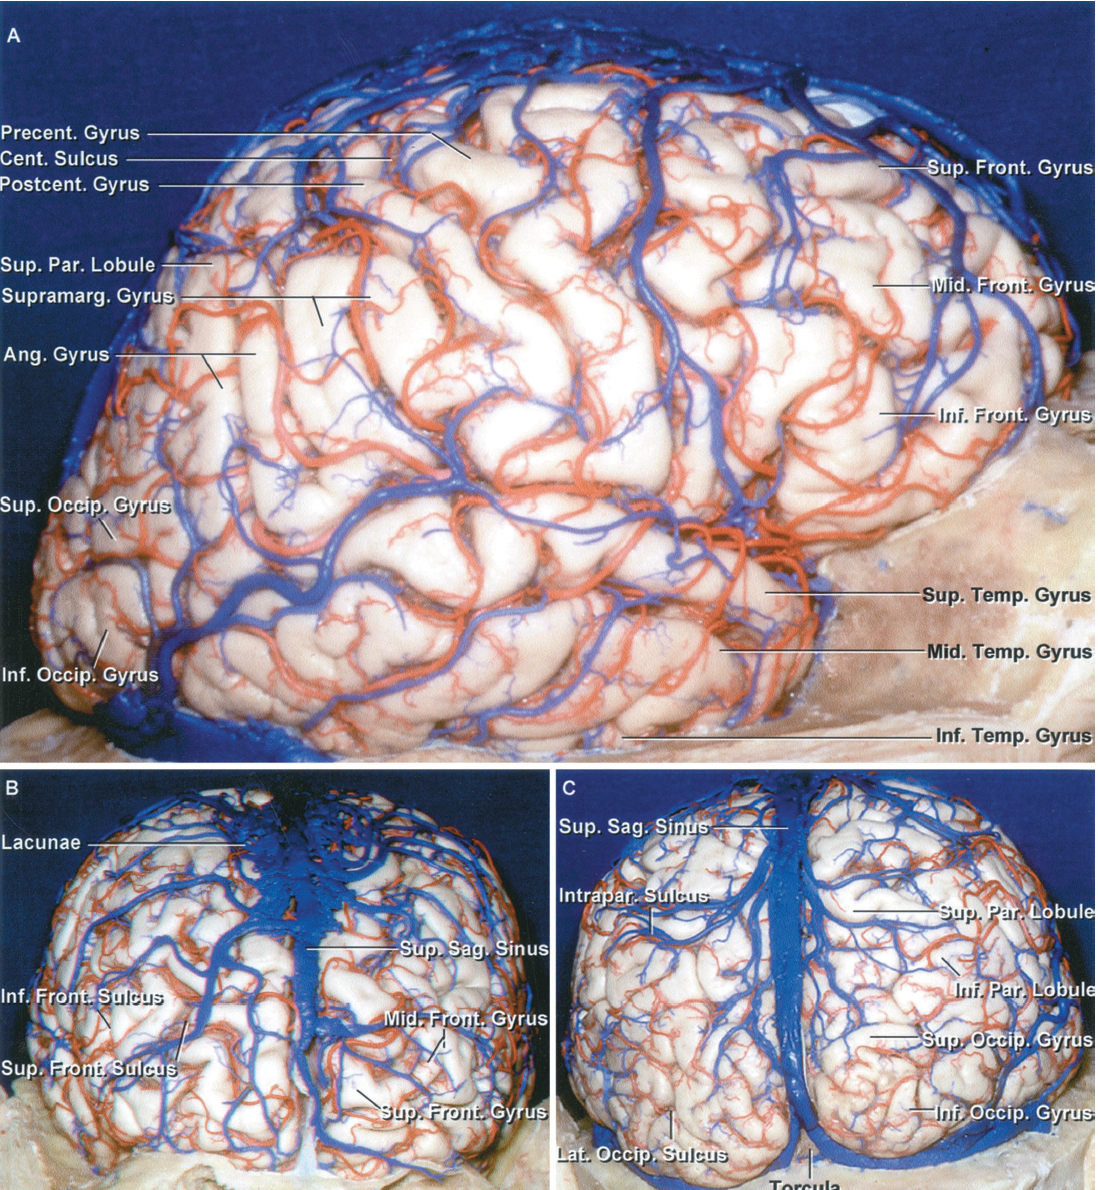 Figure 1.1. Lateral view of the right cerebral hemisphere. A, the brain, when exposed carefully and accurately, is a remarkably beautiful structure. The arteries, veins, gyri, and sulci are organized in a complex array. The frontal convexity is made up of the superior, middle, and inferior frontal and precentral gyri. The parietal convexity is composed of the postcentral gyrus and the superior and inferior parietal lobules. The inferior parietal lobule is made up of the supramarginal and angular gyrus. The temporal convexity is composed of the superior, middle, and inferior temporal gyri. The occipital convexity is formed by the superior and inferior occipital gyri. B, anterior view. The superior and middle frontal gyri are separated by the superior frontal sulcus. The inferior frontal sulcus courses between the middle and inferior frontal gyri. The veins from the anterior part of the hemisphere are directed backward to reach the superior sagittal sinus. A large venous lacunae extends over the superior margin of the frontal lobe adjacent to the superior sagittal sinus. C, posterior view of the hemisphere. The lateral occipital sulcus divides the lateral aspect of the occipital lobe into the superior and inferior occipital gyri. The veins from the occipital convexity are directed forward to enter the superiorsagittal sinus. The posterior part of the parietal lobe is divided by the intraparietal sulcus into the superior and inferior parietal lobules. Ang., angular; Cent., central; Front., frontal; Inf., inferior; Intrapar., intraparietal; Lat., lateral; Mid., middle; Occip., occipital; Par., parietal; Postcent., postcentral; Precent., precentral; Sag., sagittal; Sup., superior; Supramarg., supramarginal; Temp., temporal.